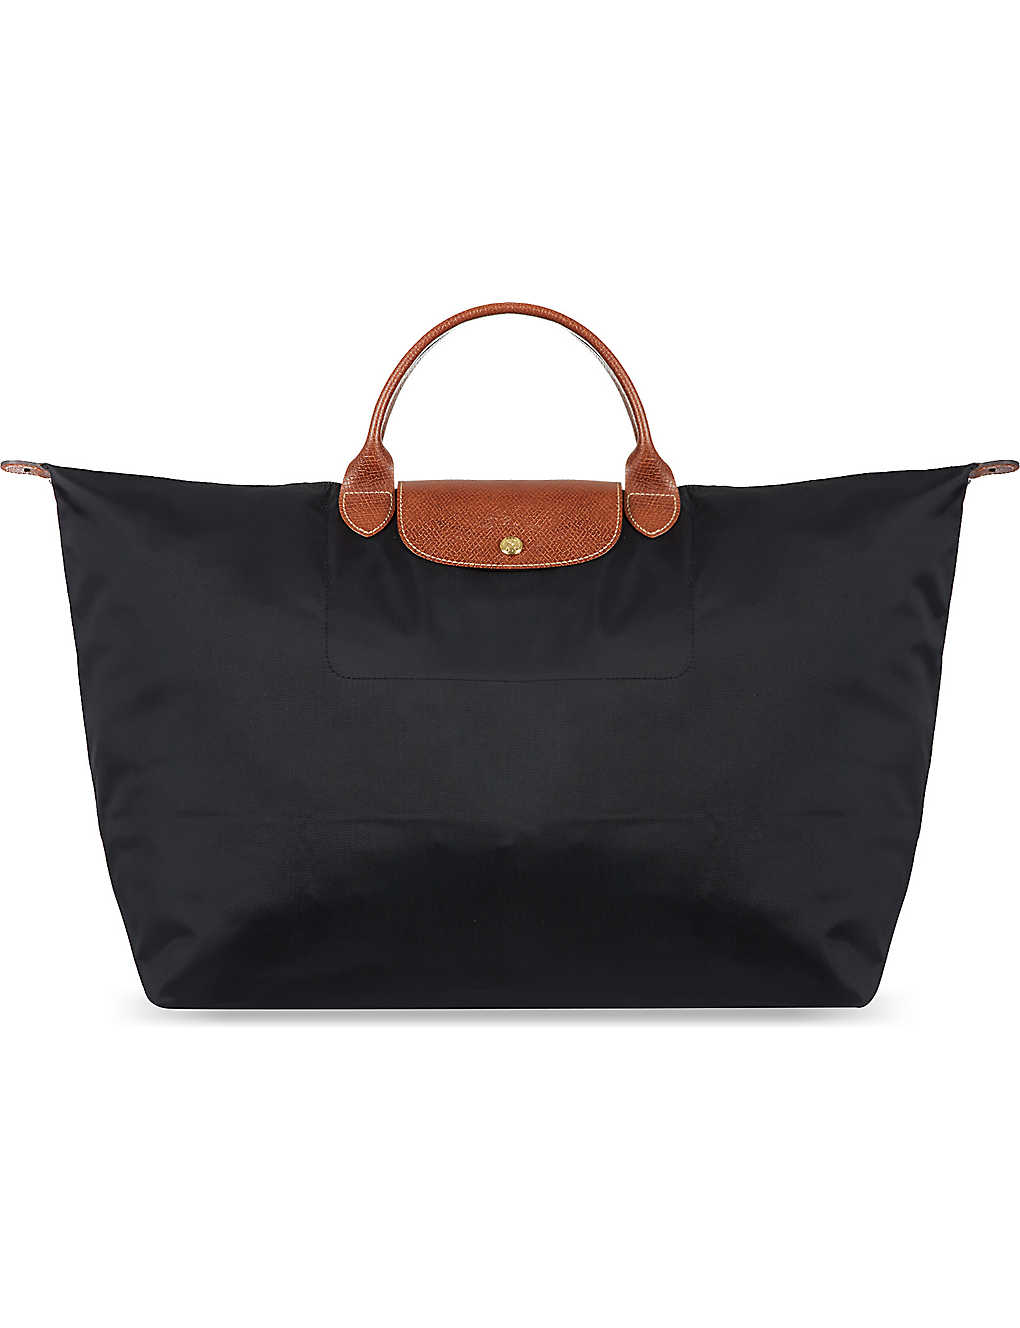 1708321d8b LONGCHAMP - Le Pliage medium travel bag in black | Selfridges.com